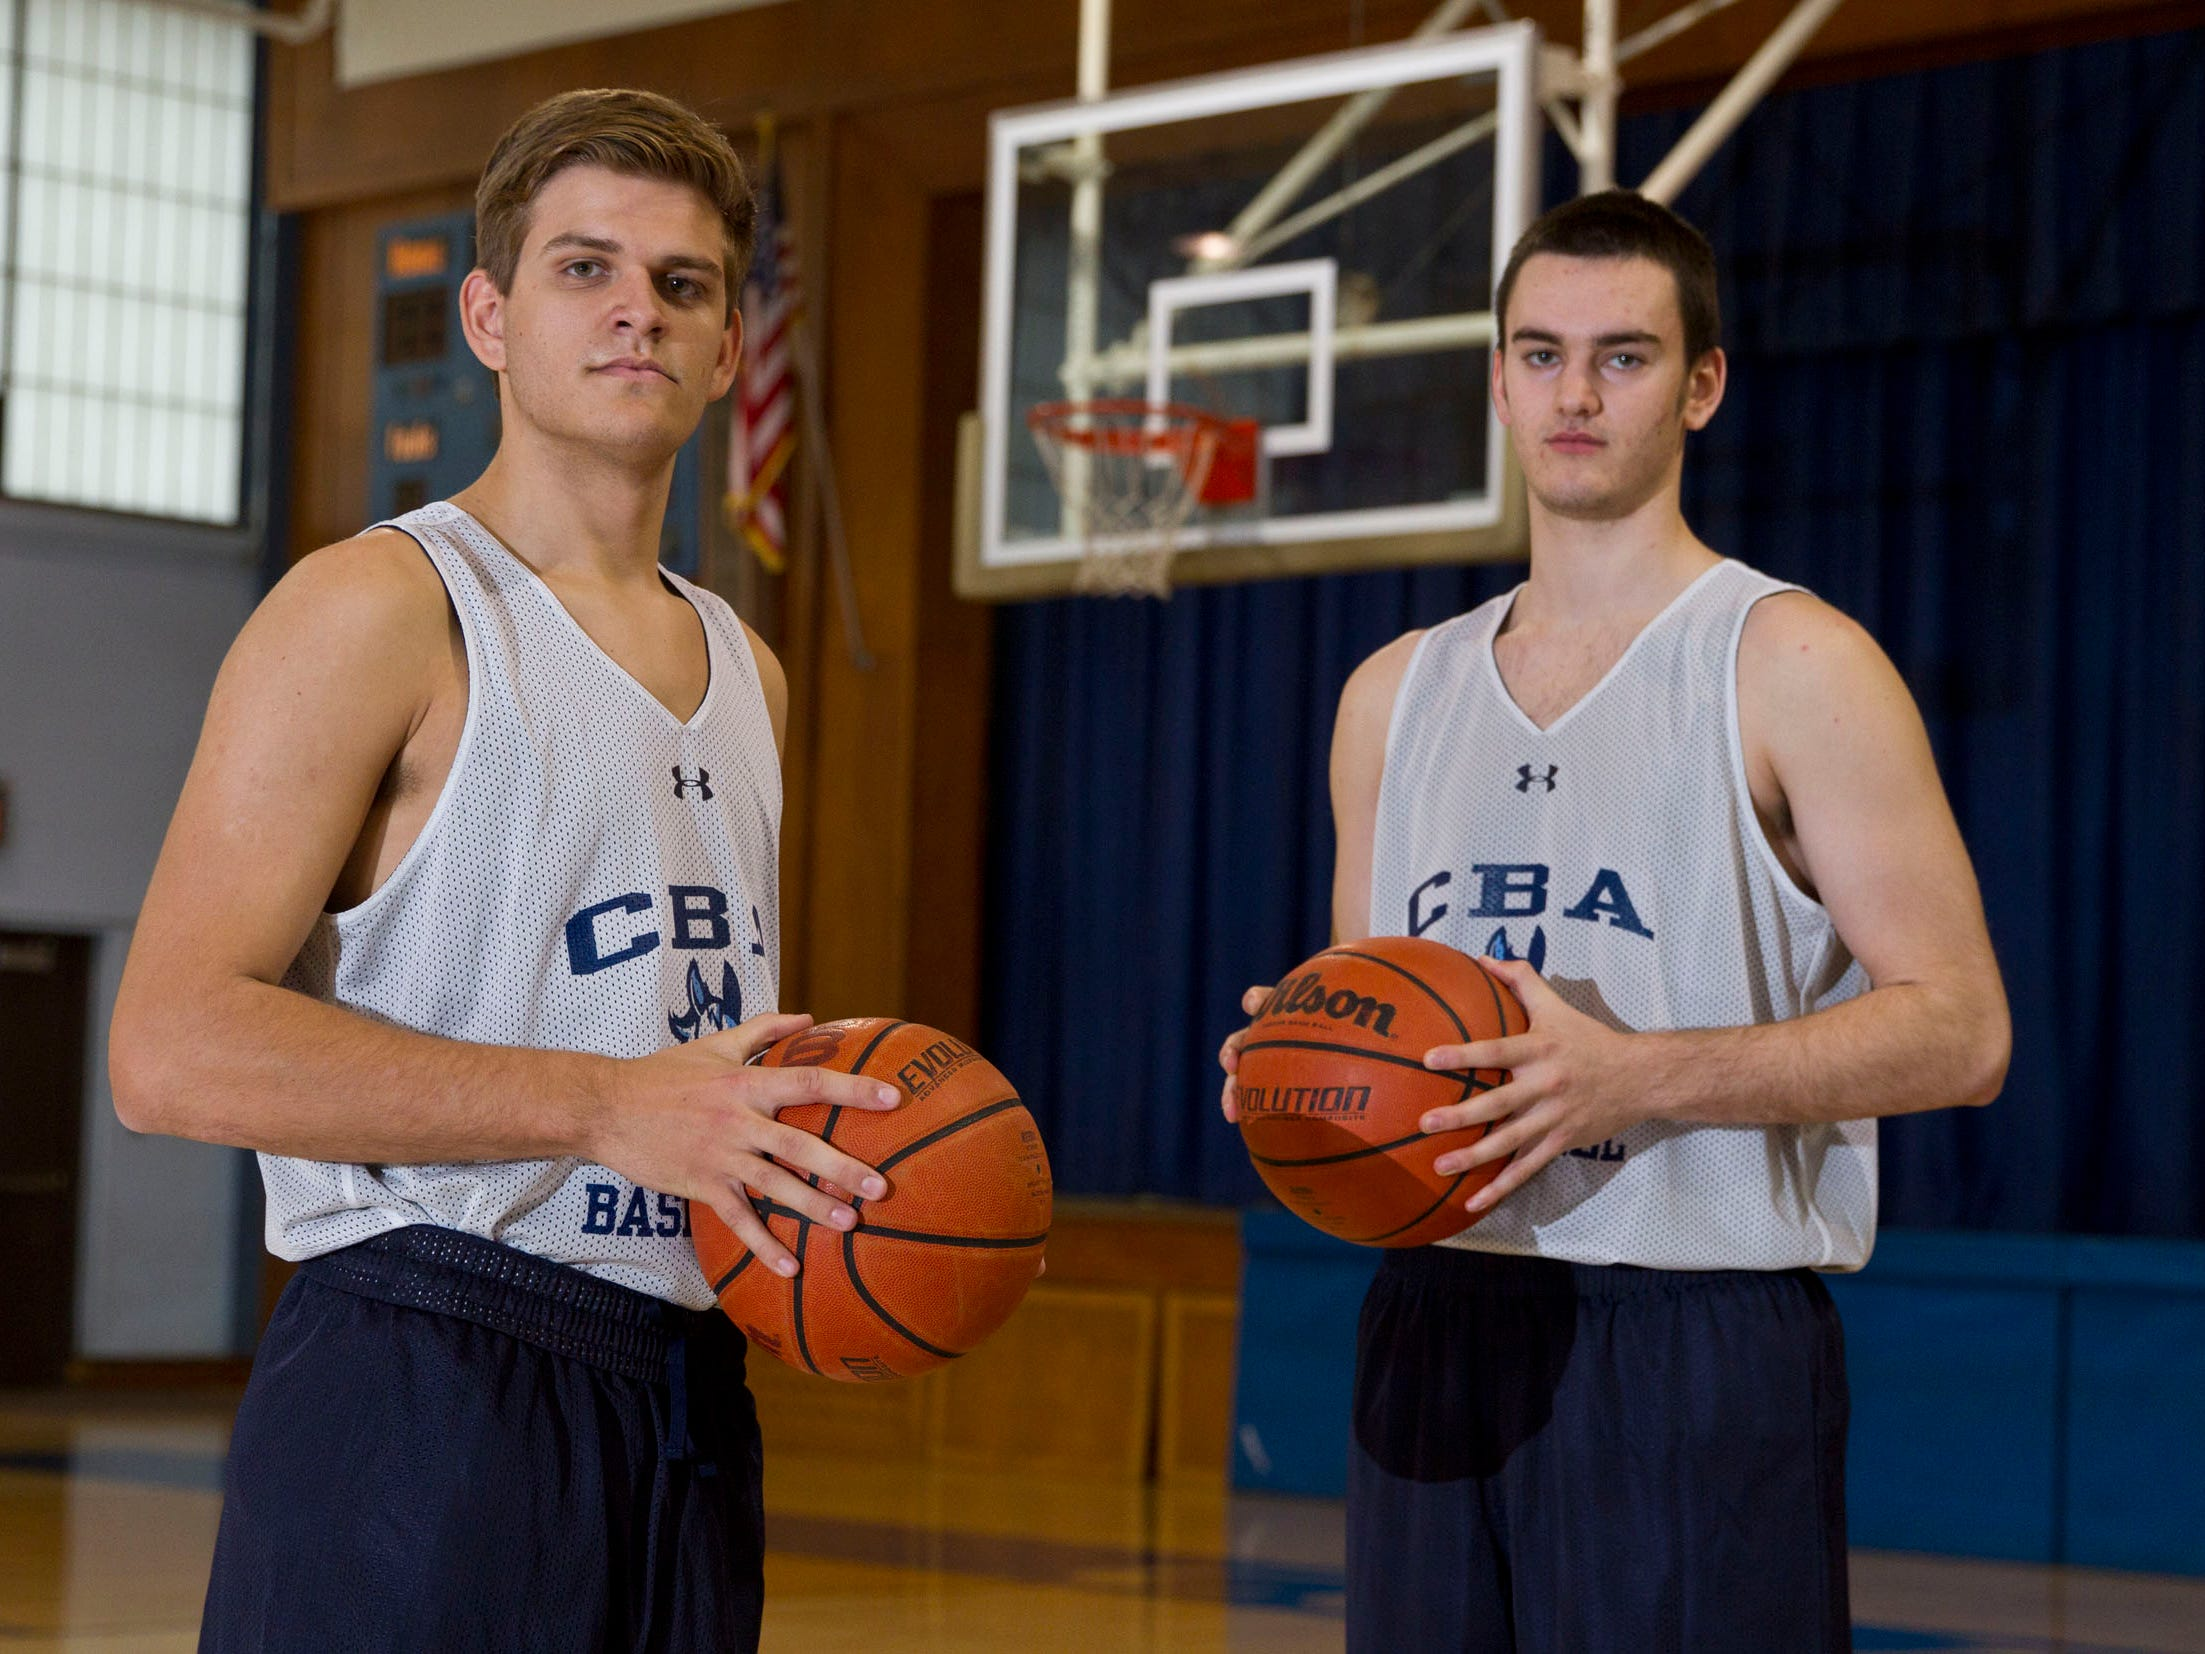 Boys basketball preview featuring Christian Brothers Academy. Jack Laffey and Pat Andree lead the CBA team. Lincroft, NJ Thursday, December 4, 2014 Doug Hood/Staff Photographer Asbury Park Press